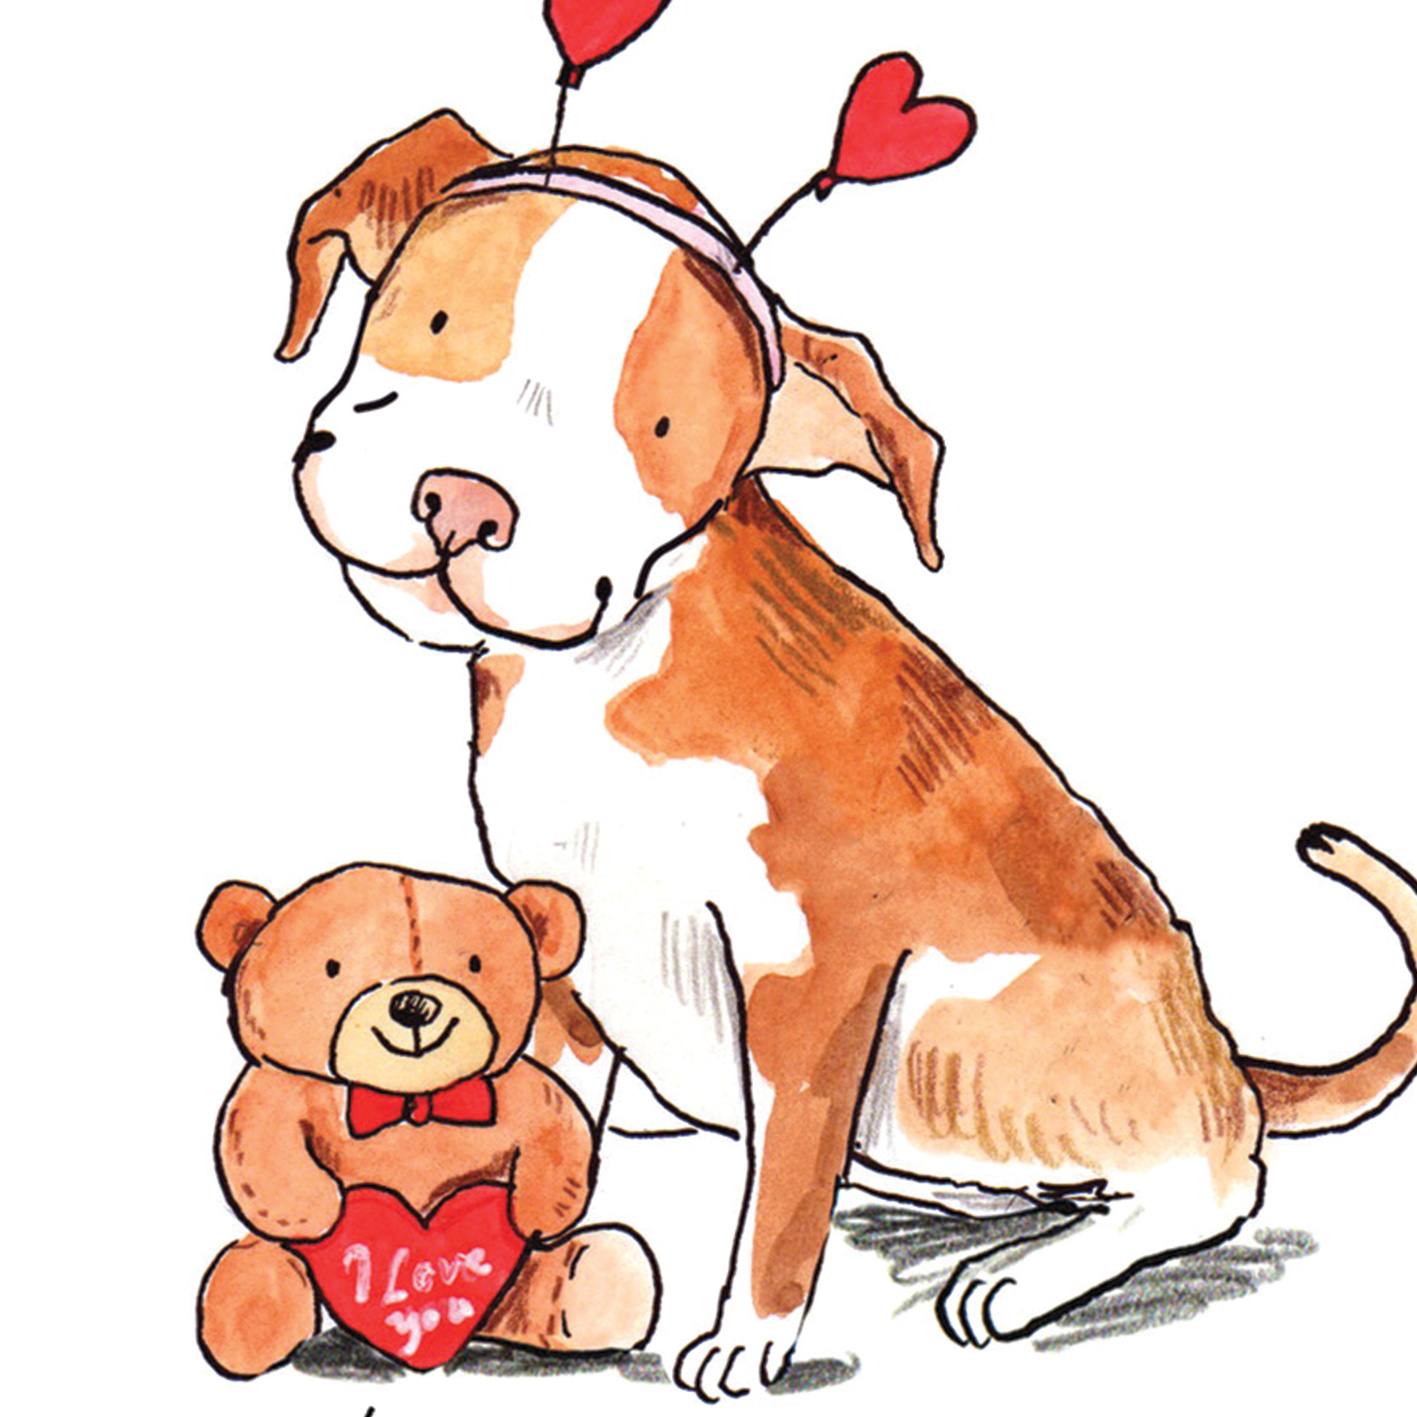 Little-Pit-Romantic-dog-themed-greetings-card_SM71_CU